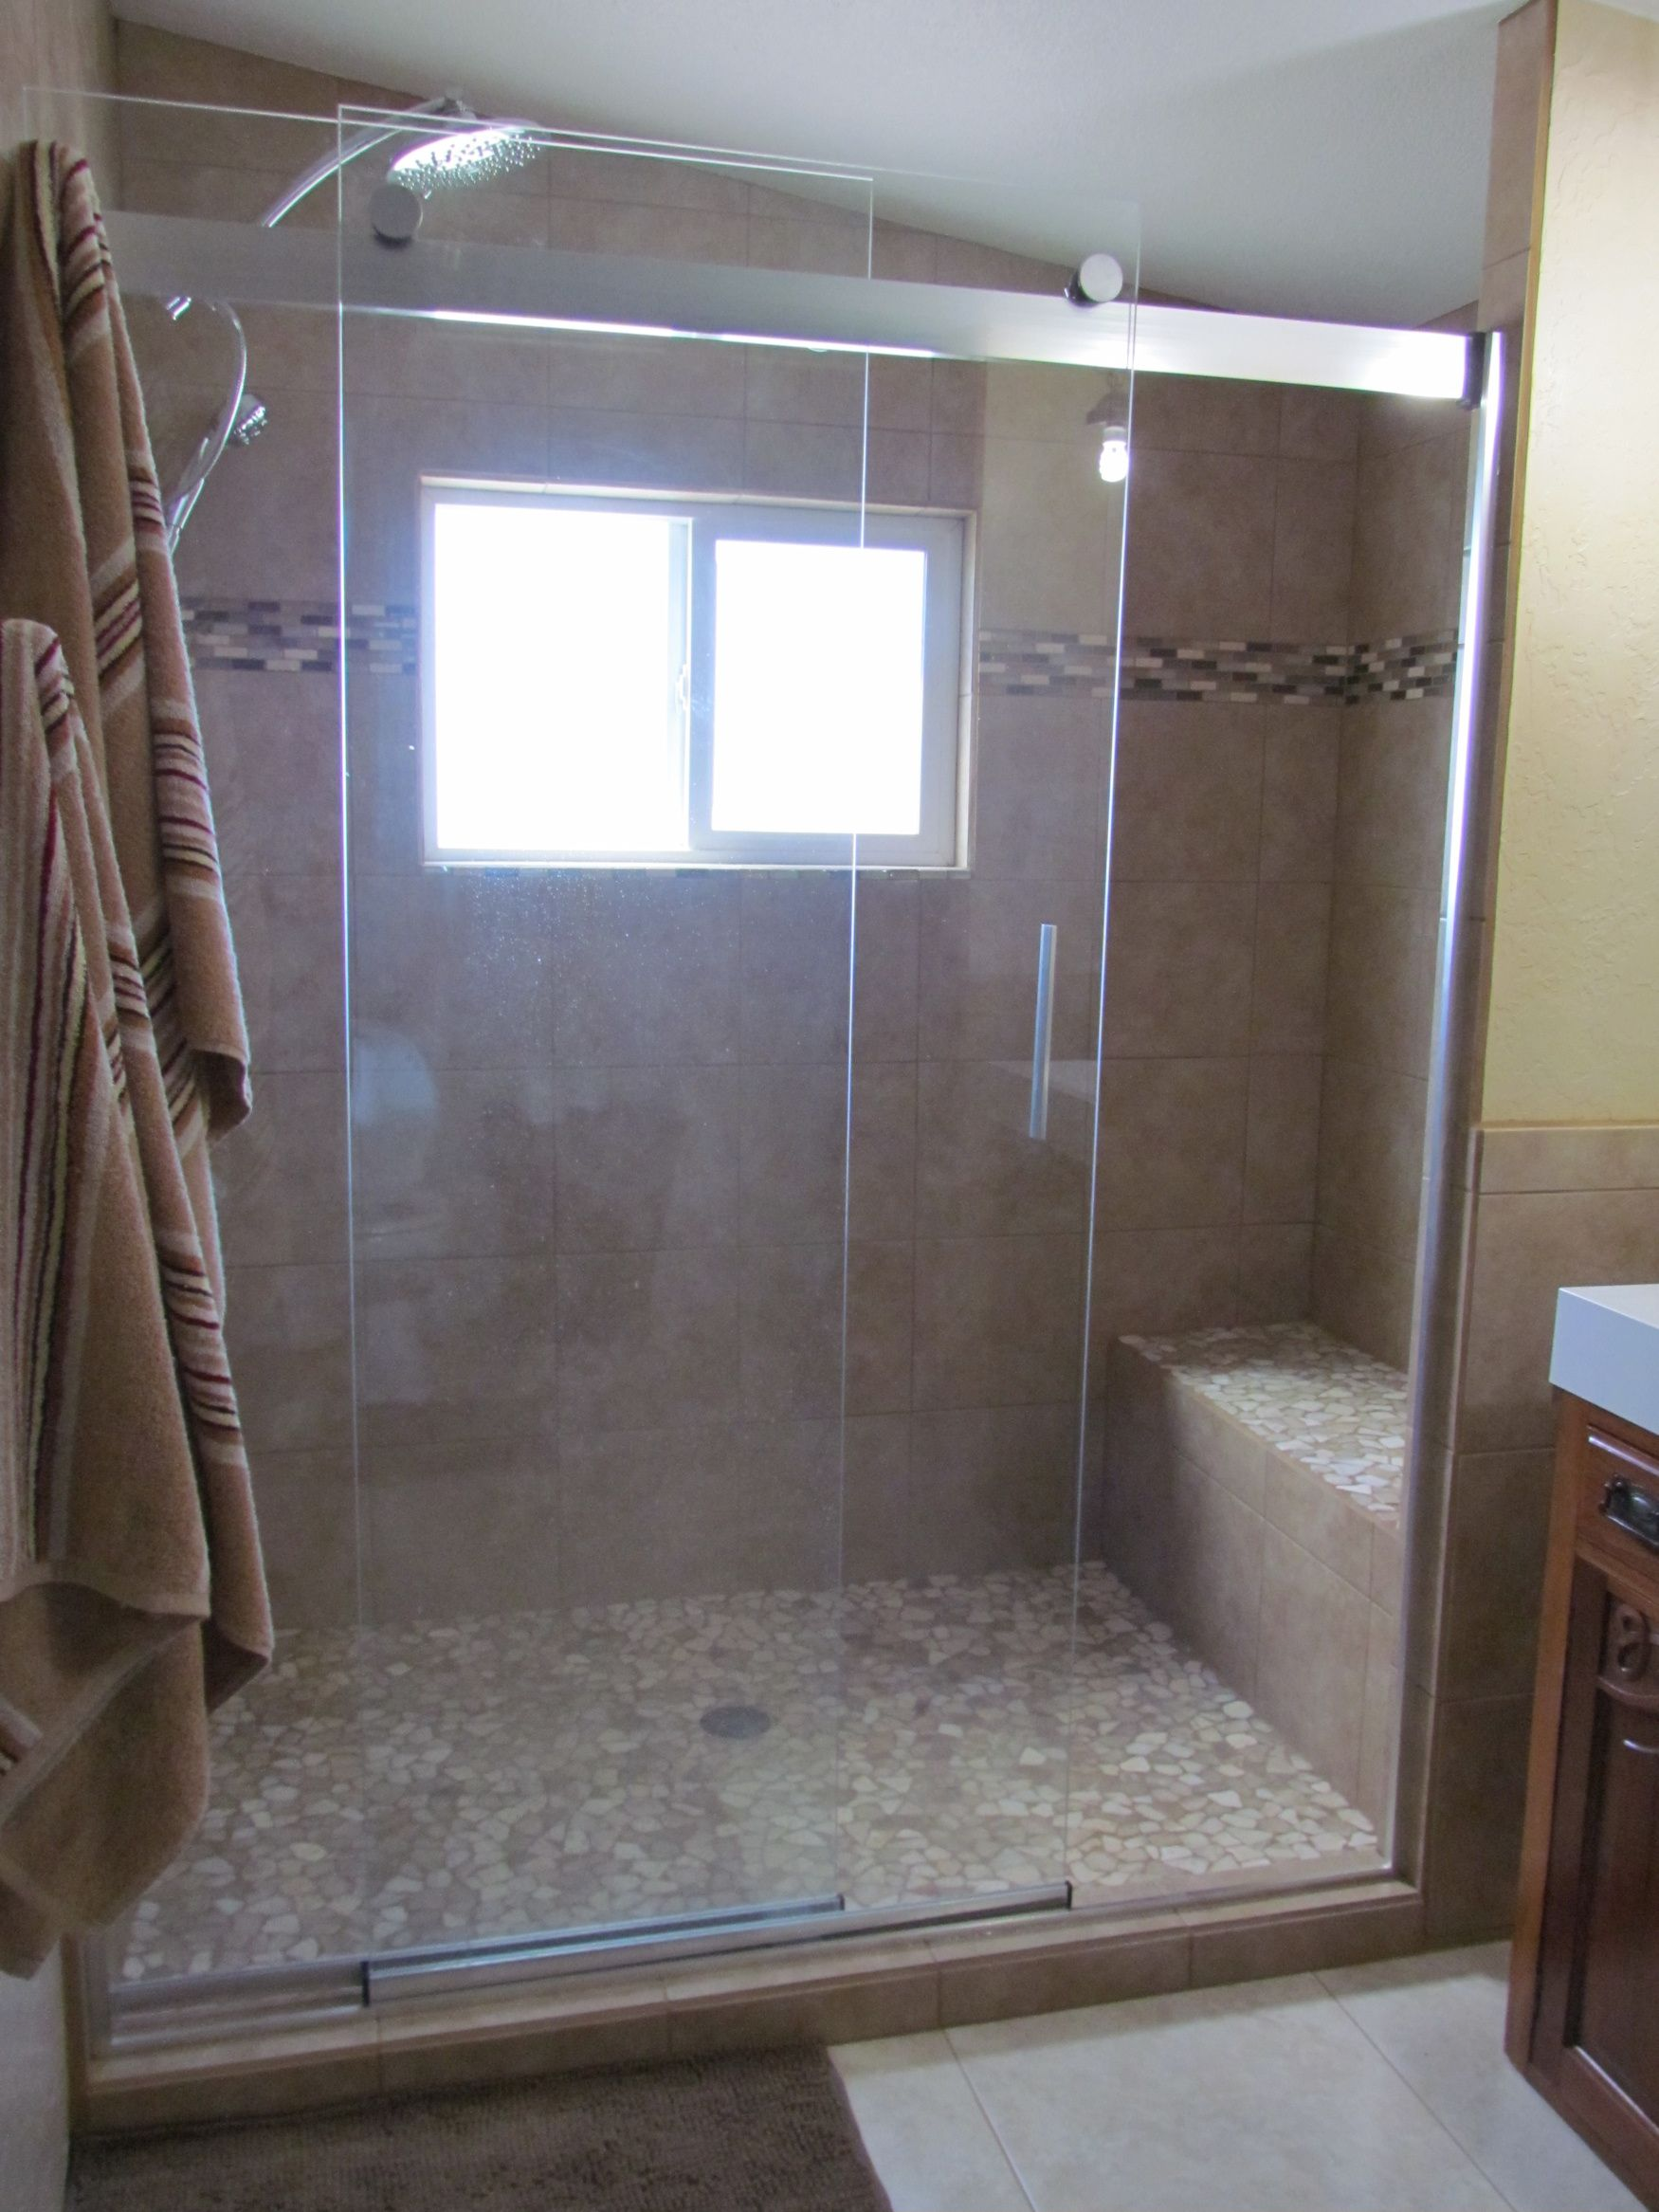 Shower Floor Tiles Which Why And How: Tile Shower Pan, Shower Pan And